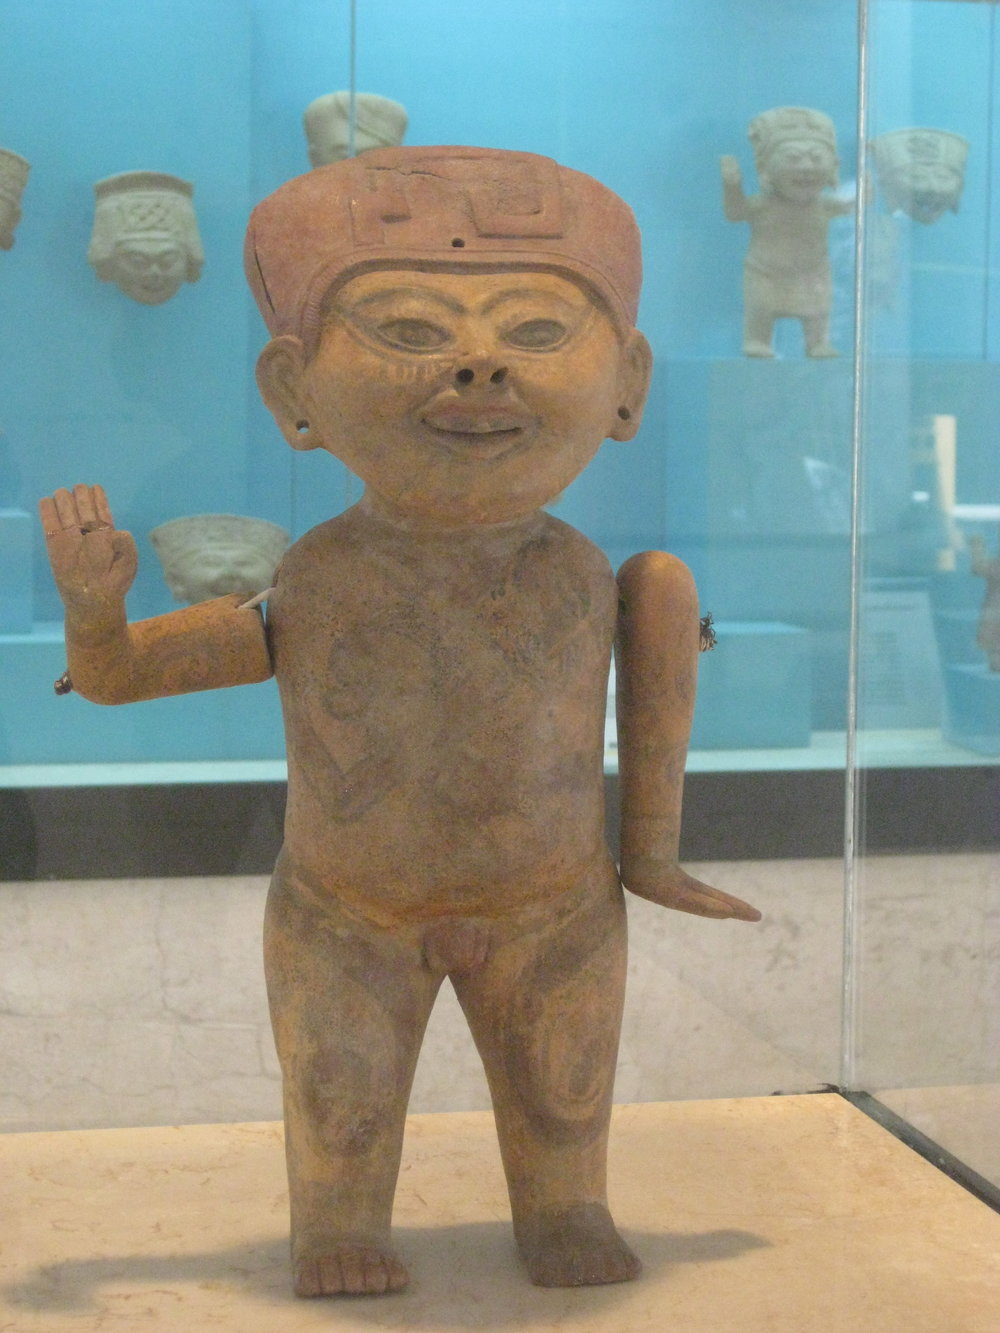 From the Xalapa Museum of Anthropology